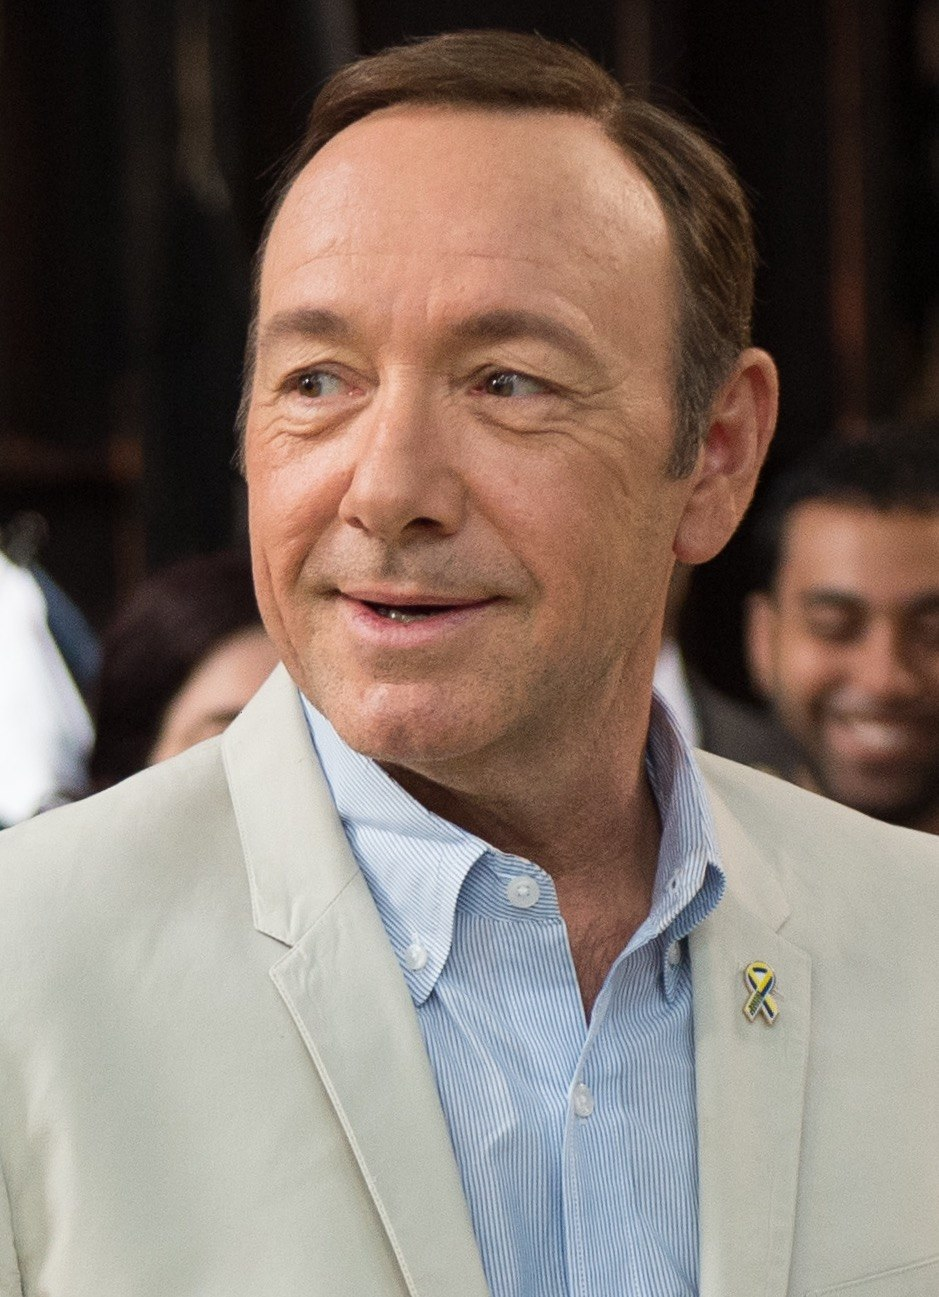 Kevin Spacey, May 2013